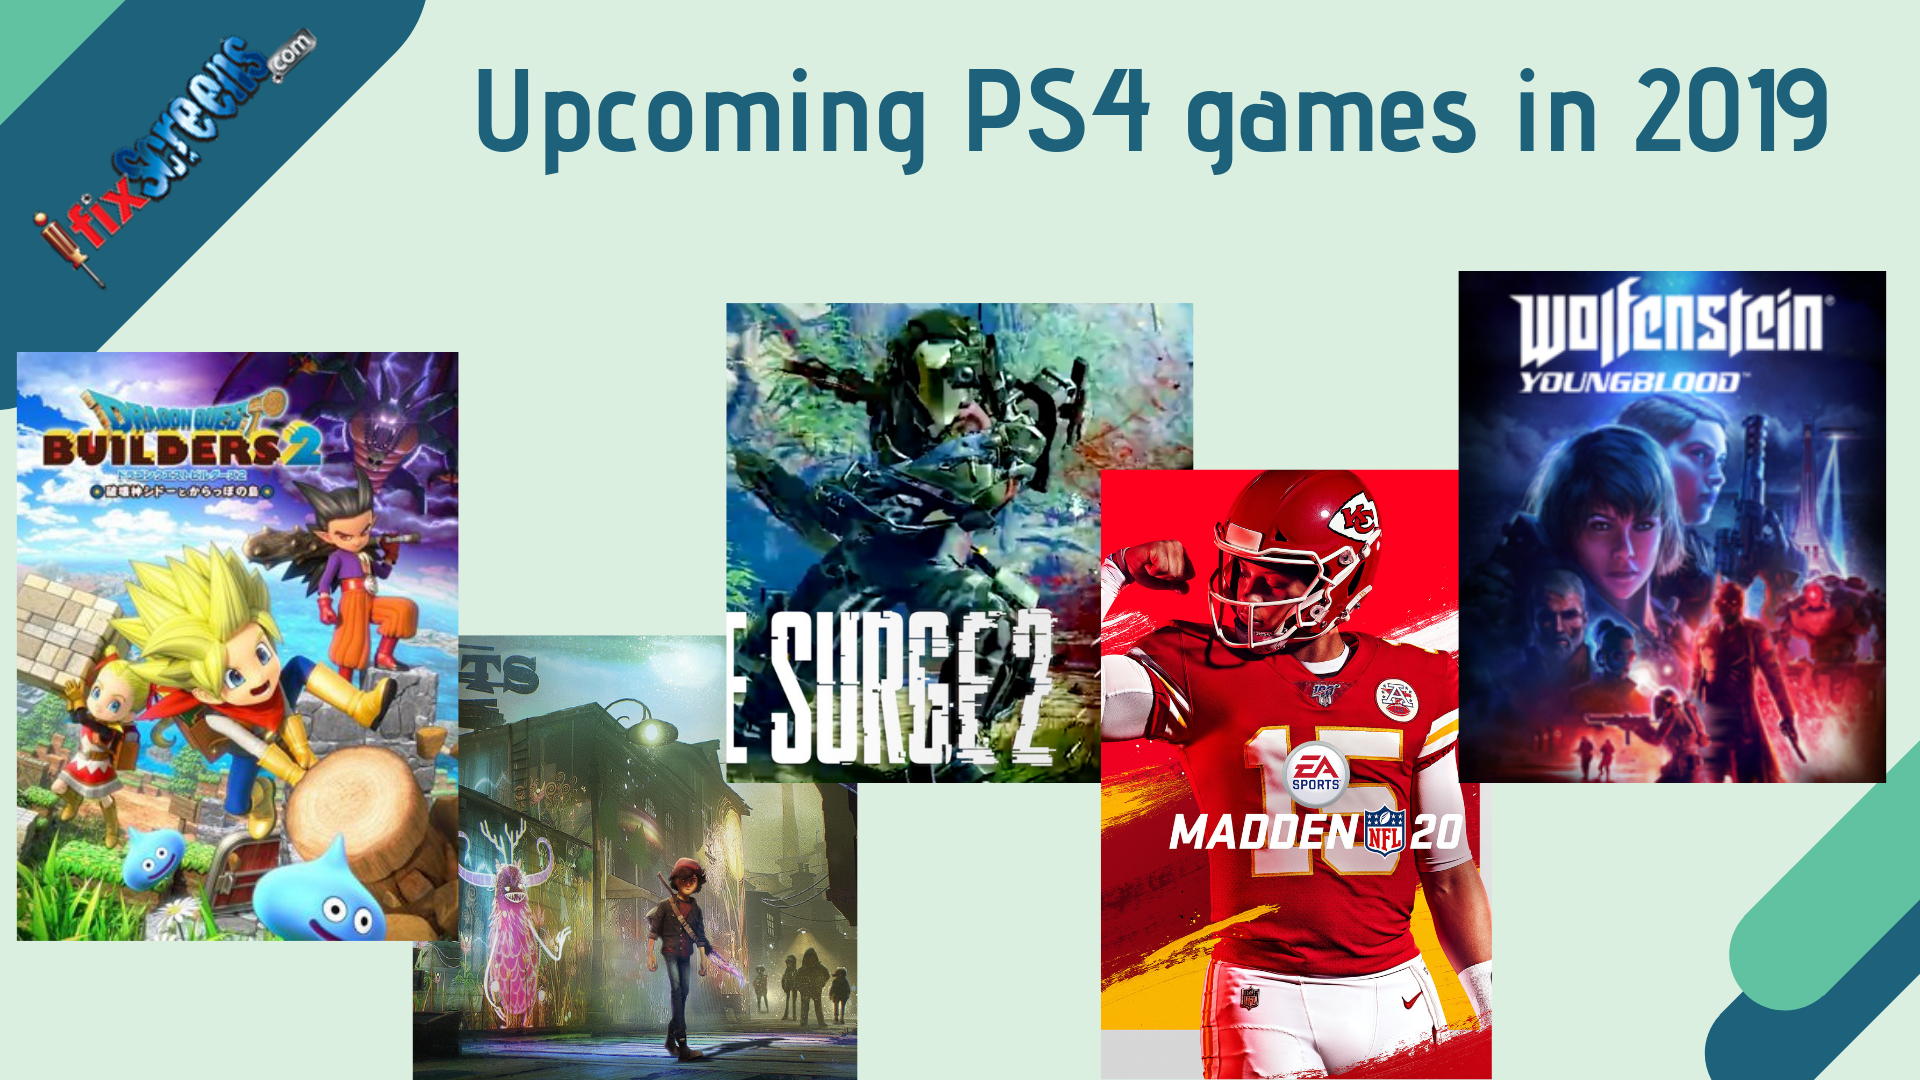 Upcoming PlayStation 4 (PS4) Games In 2019 | IFixScreens